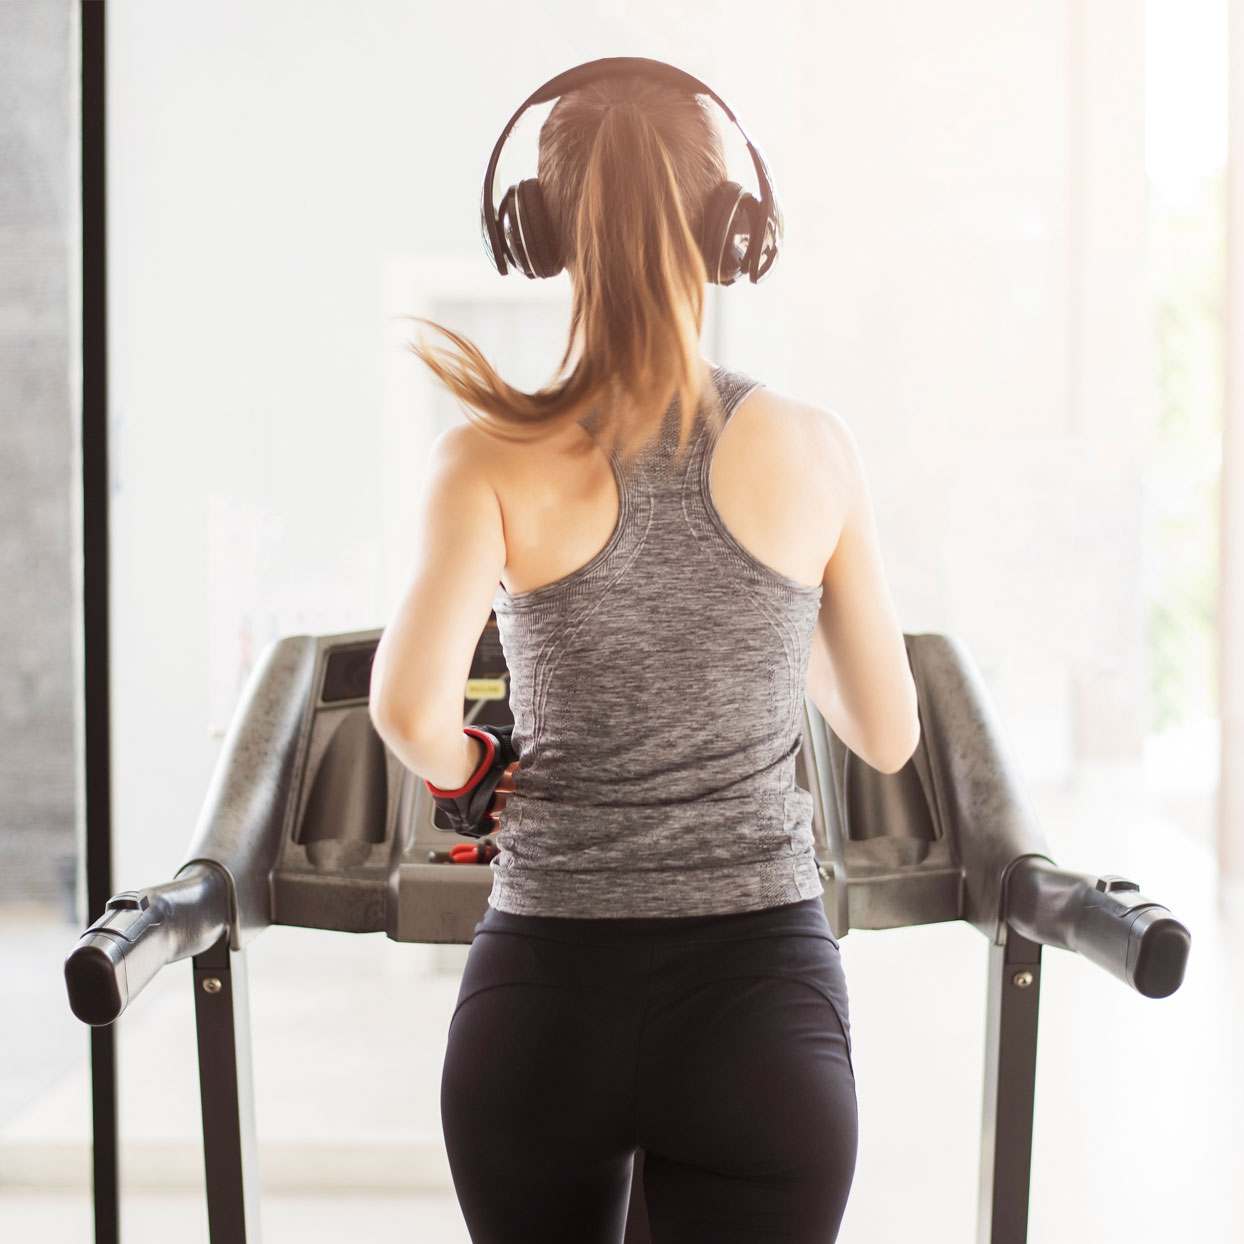 Rear View Of Woman Listening Music While Running On Treadmill At Gym 1244x1244